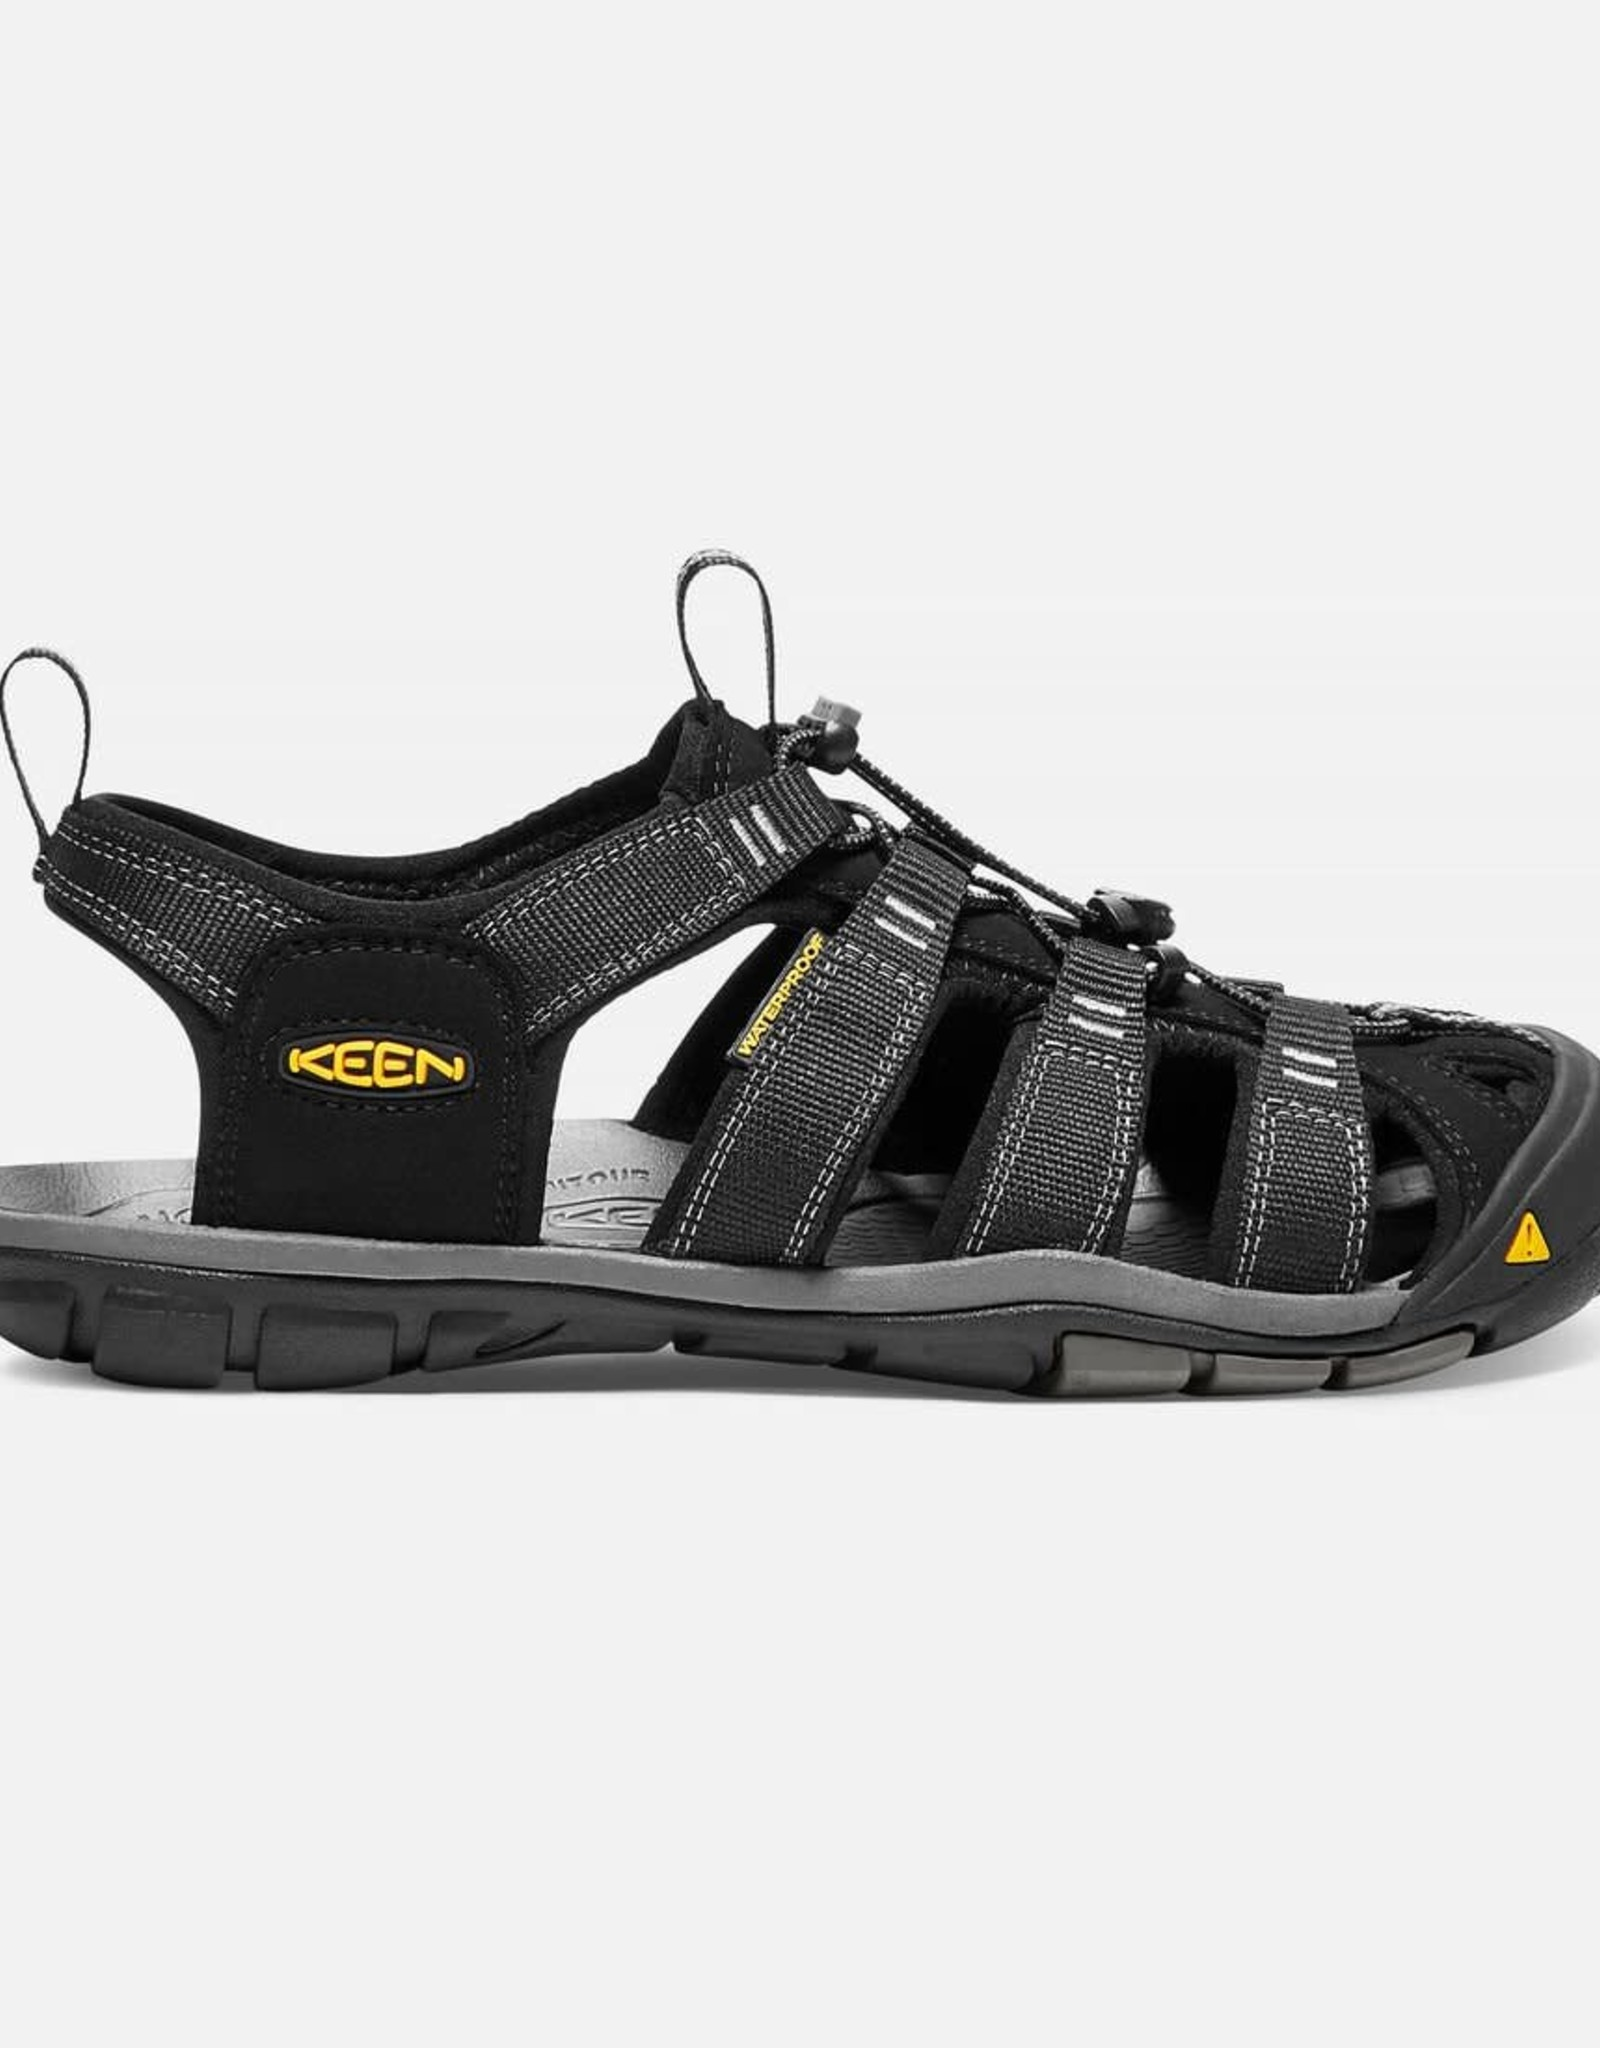 Keen Mens clearwater cnx